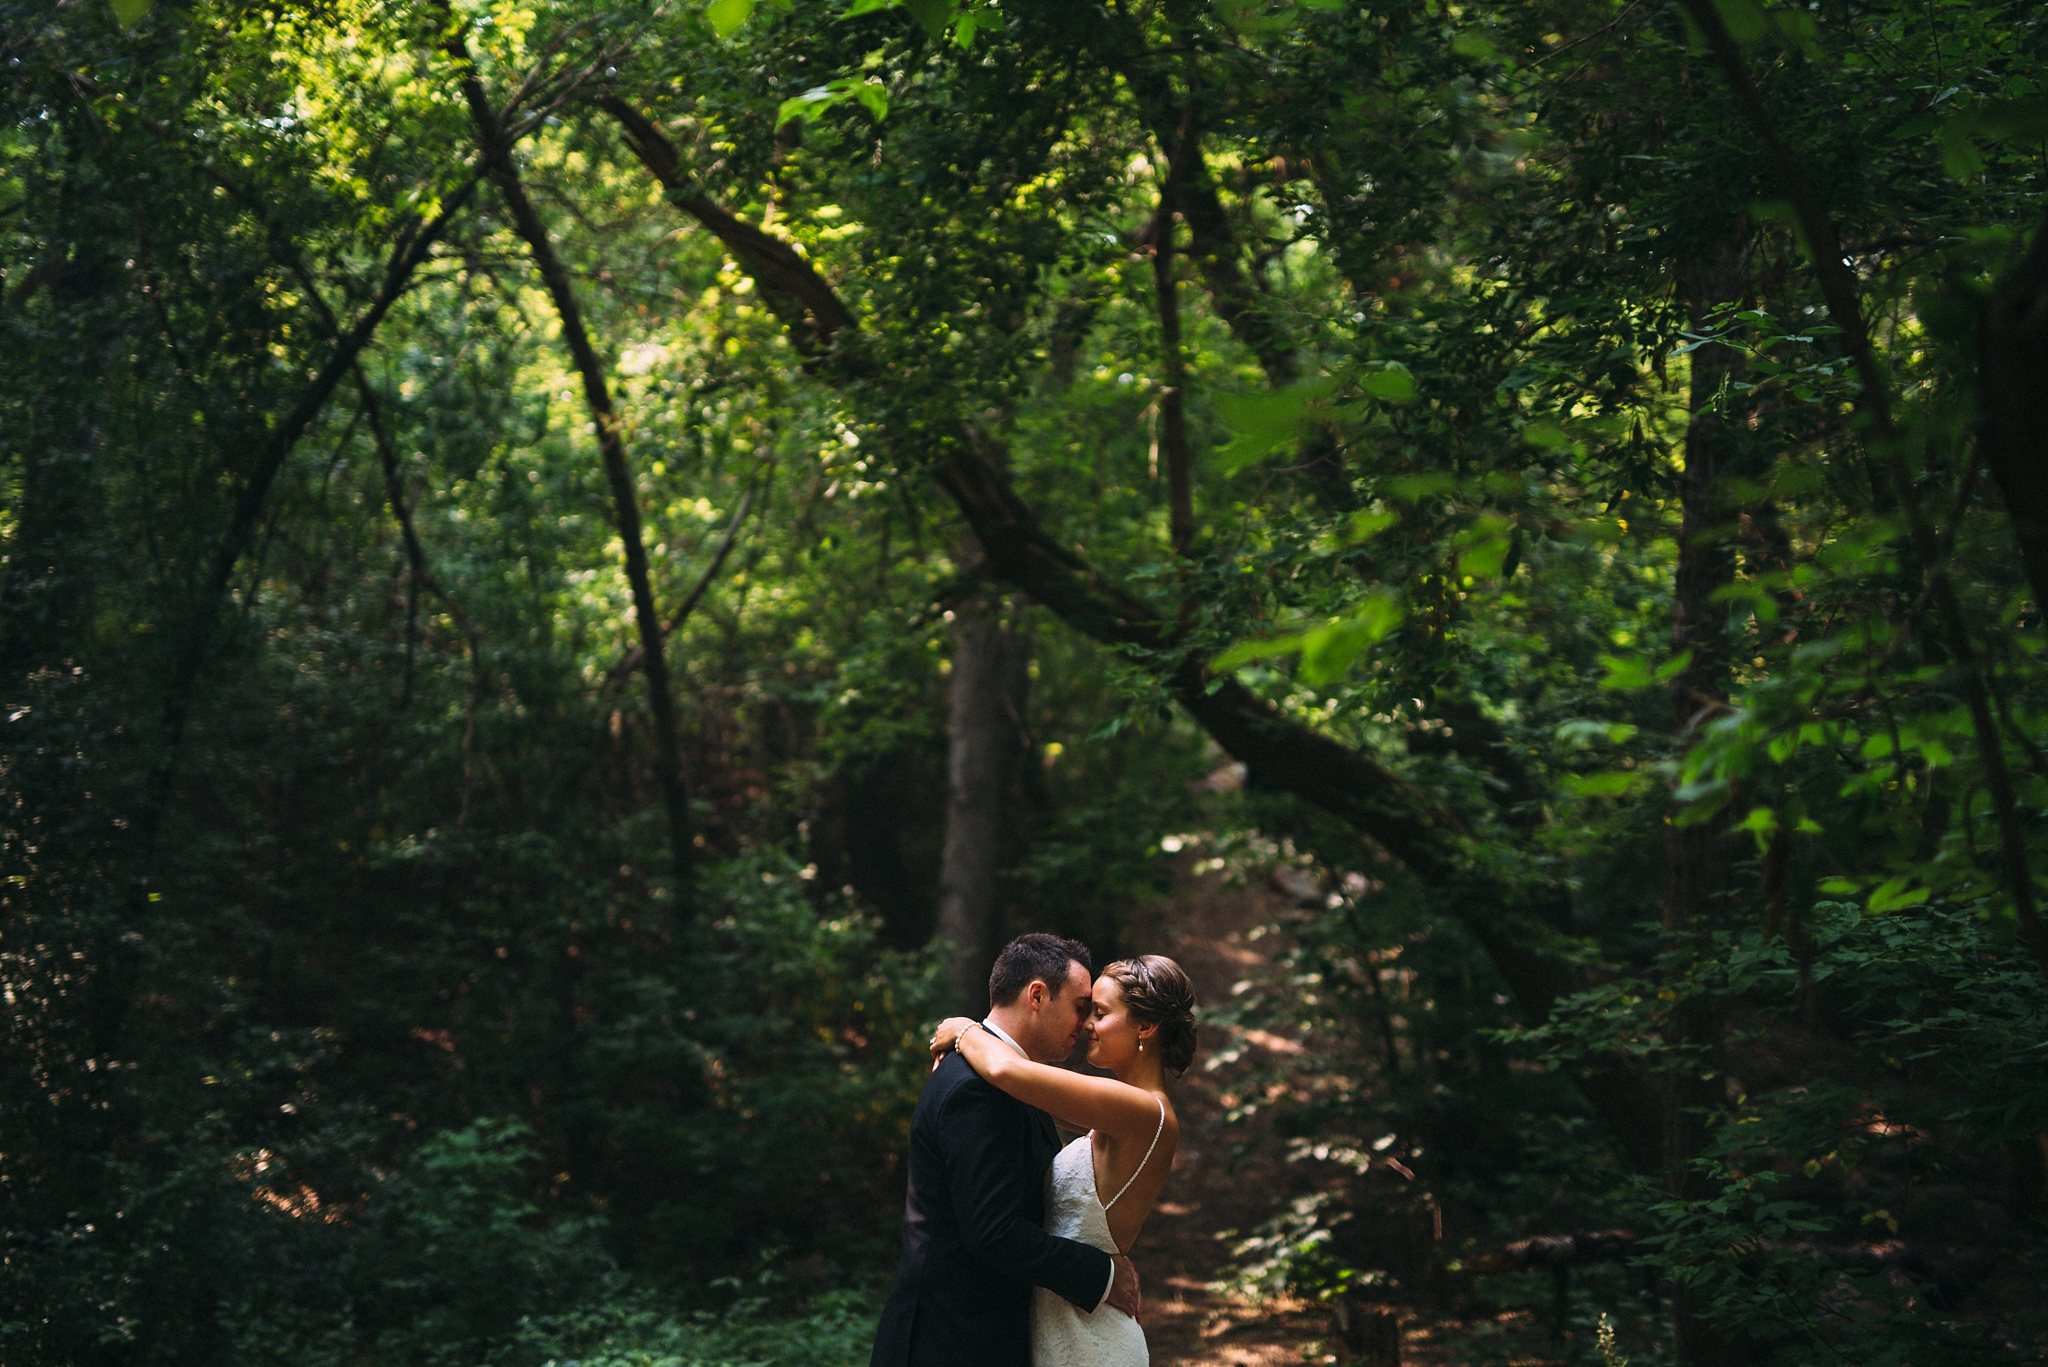 kaihla_tonai_intimate_wedding_elopement_photographer_2036